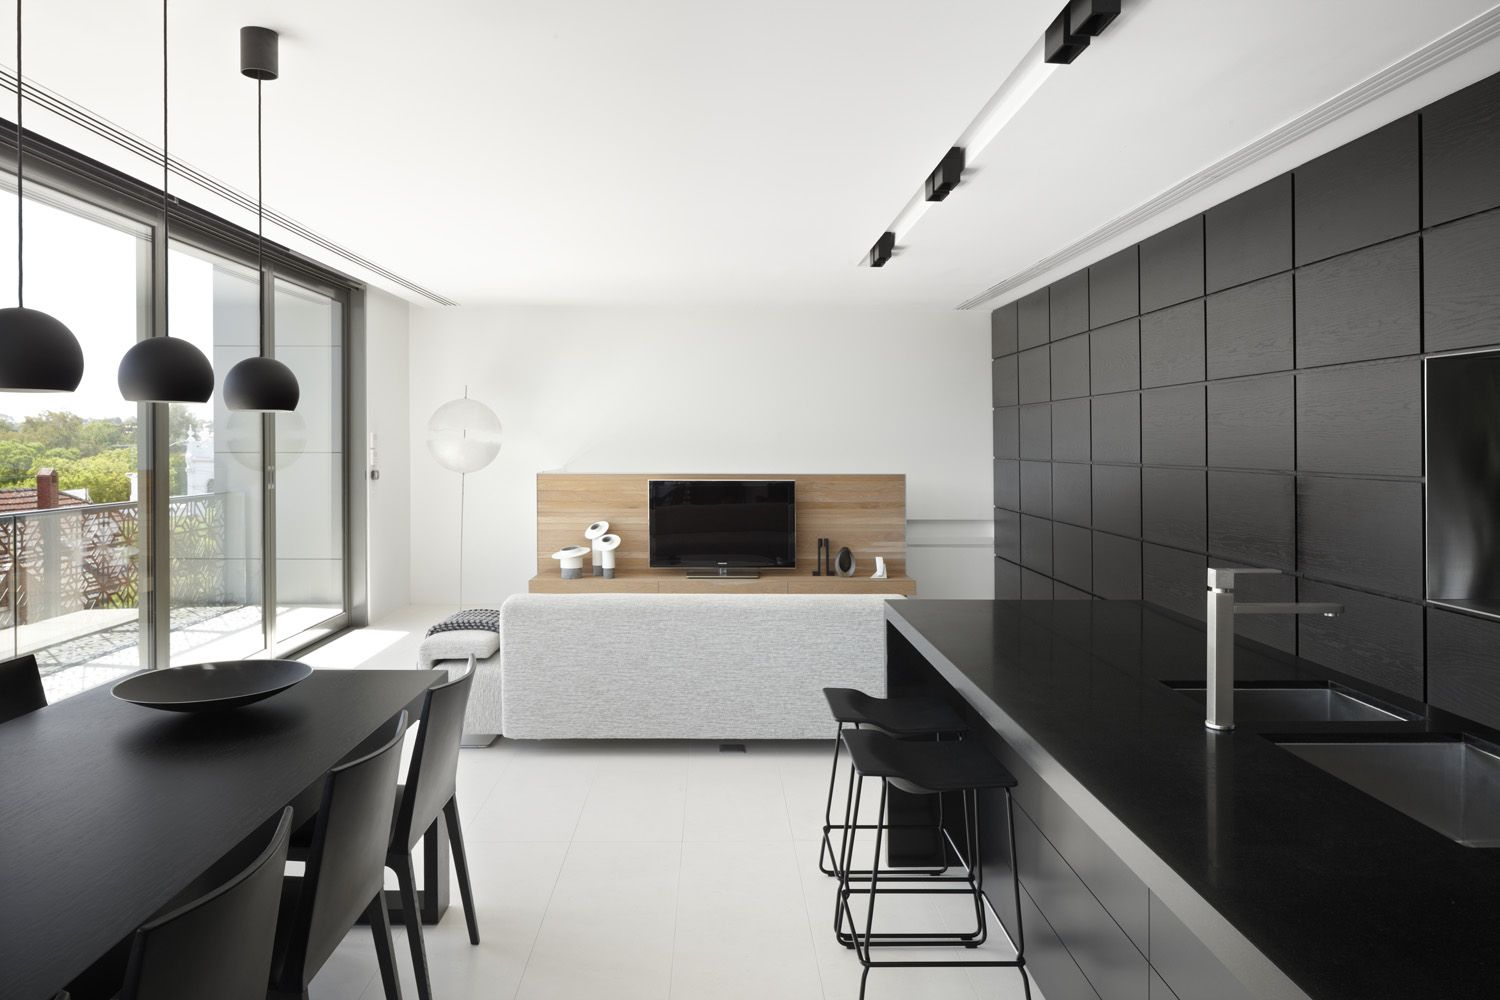 Black and white kitchen and living room design